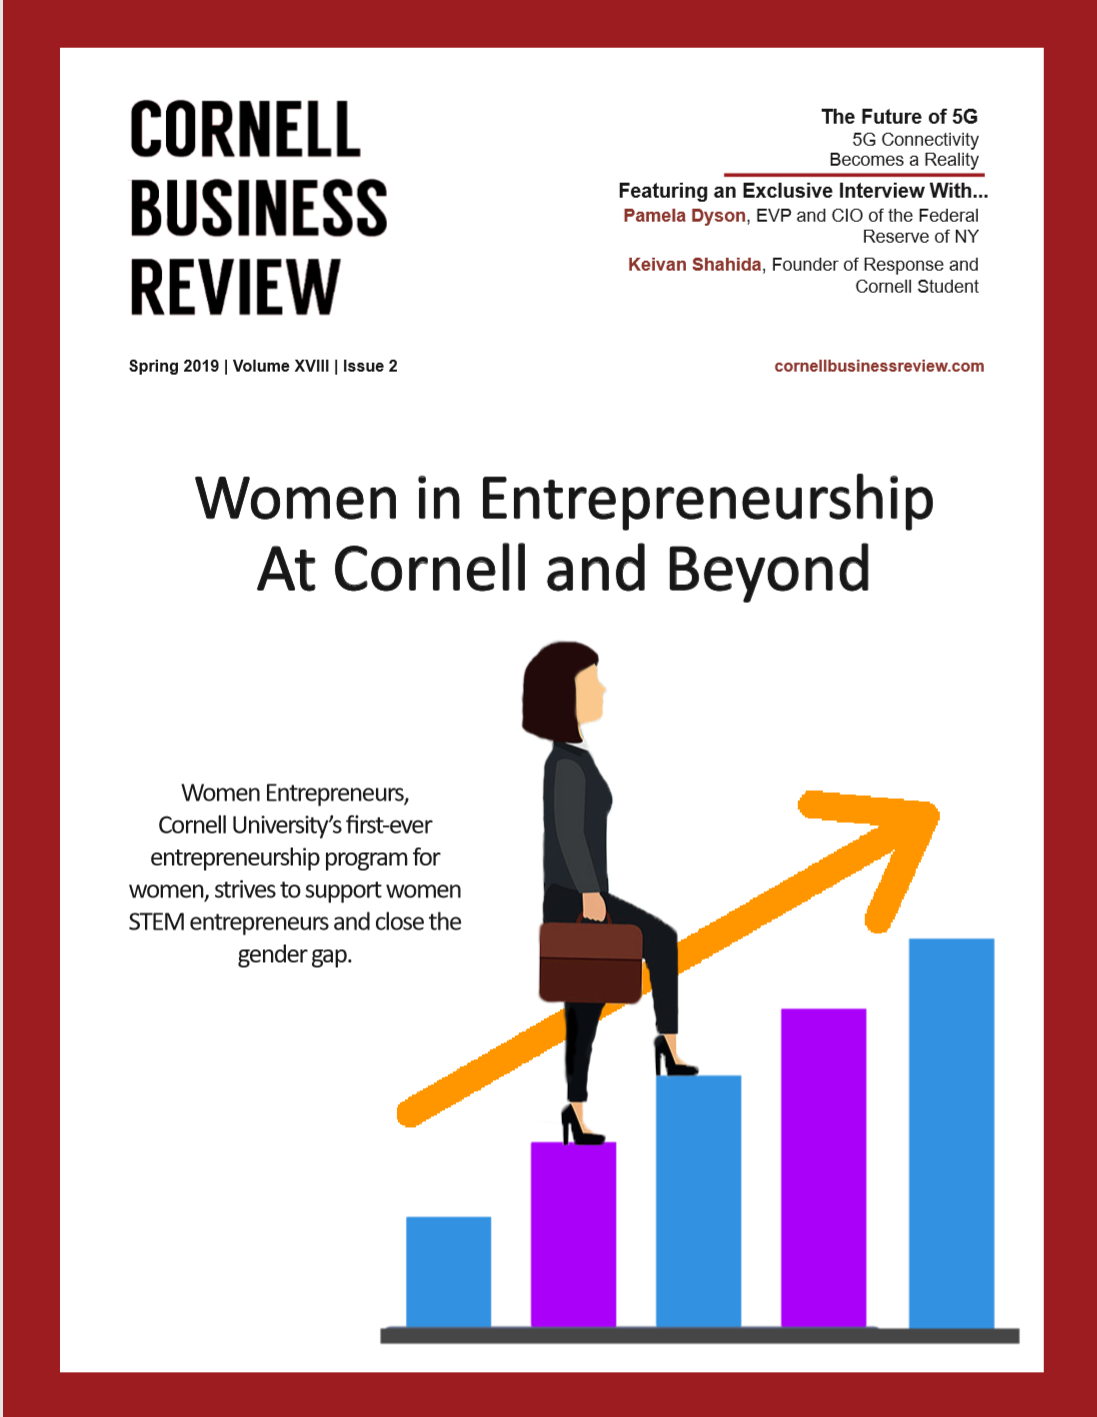 SPRING 2019 - Featuring Exclusive Interviews with Pamela Dyson, EVP and CIO of the Federal Reserve of NY & Keivan Shahida, Entrepreneur and Cornell Student